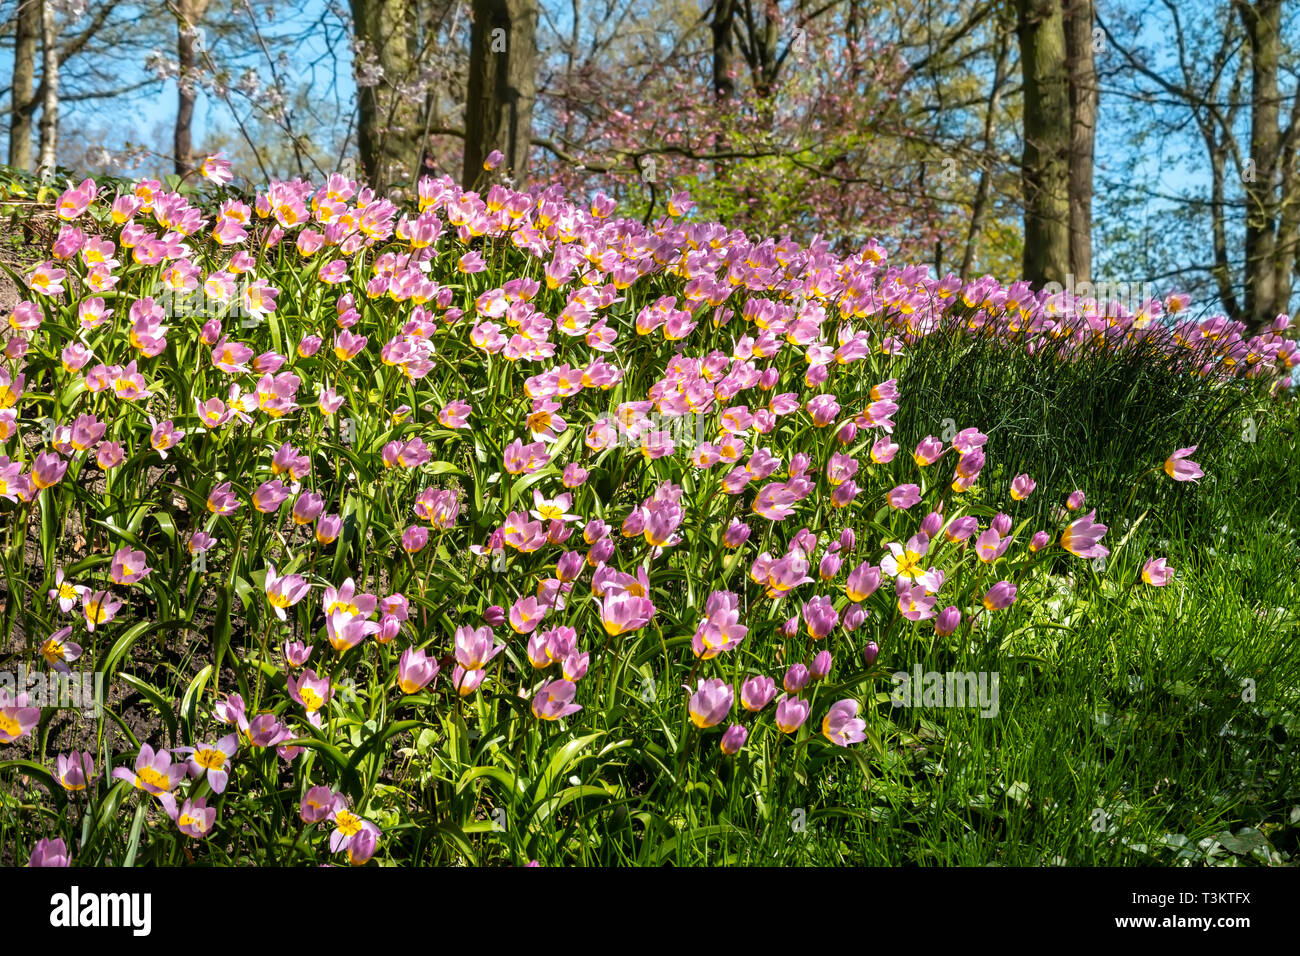 Lilac Wonder Tulips, Tulipa Saxatilis Lilac Wonder, in a natural setting under trees in the Keukenhof Gardens Netherlands. - Stock Image